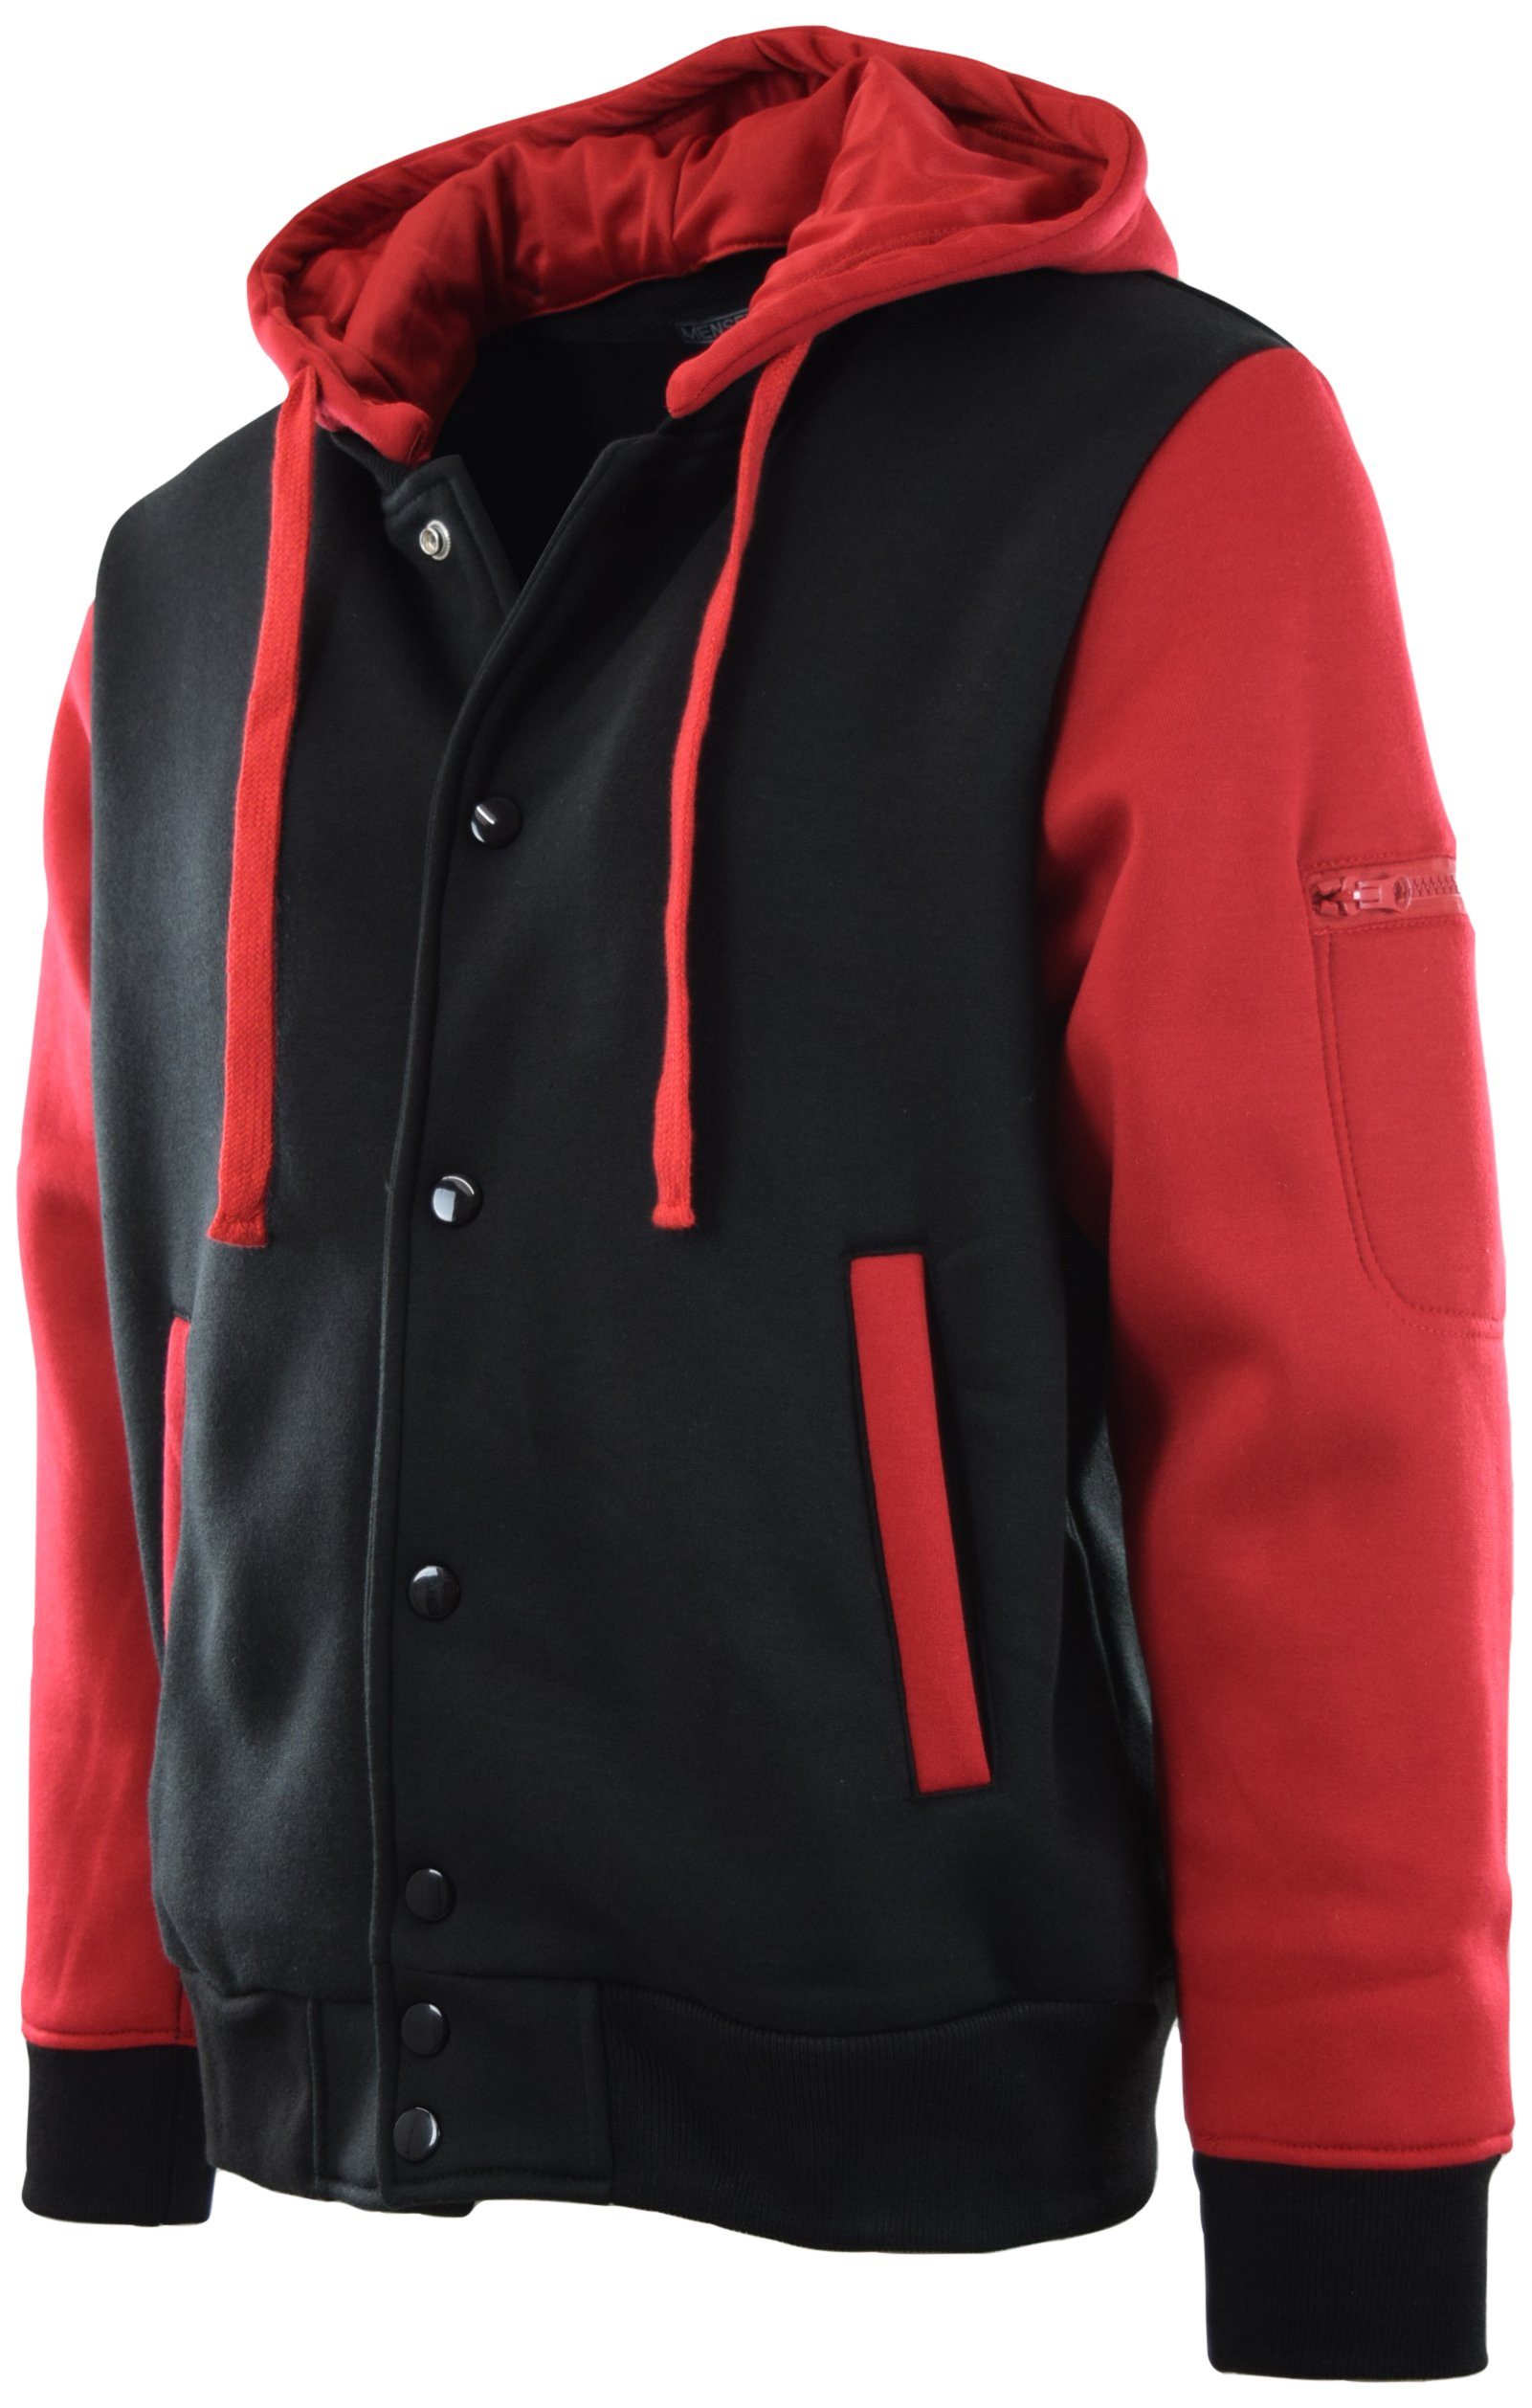 ChoiceApparel Mens Baseball Varsity Jacket with Detachable Hoodie (L, 901-Black/Red)